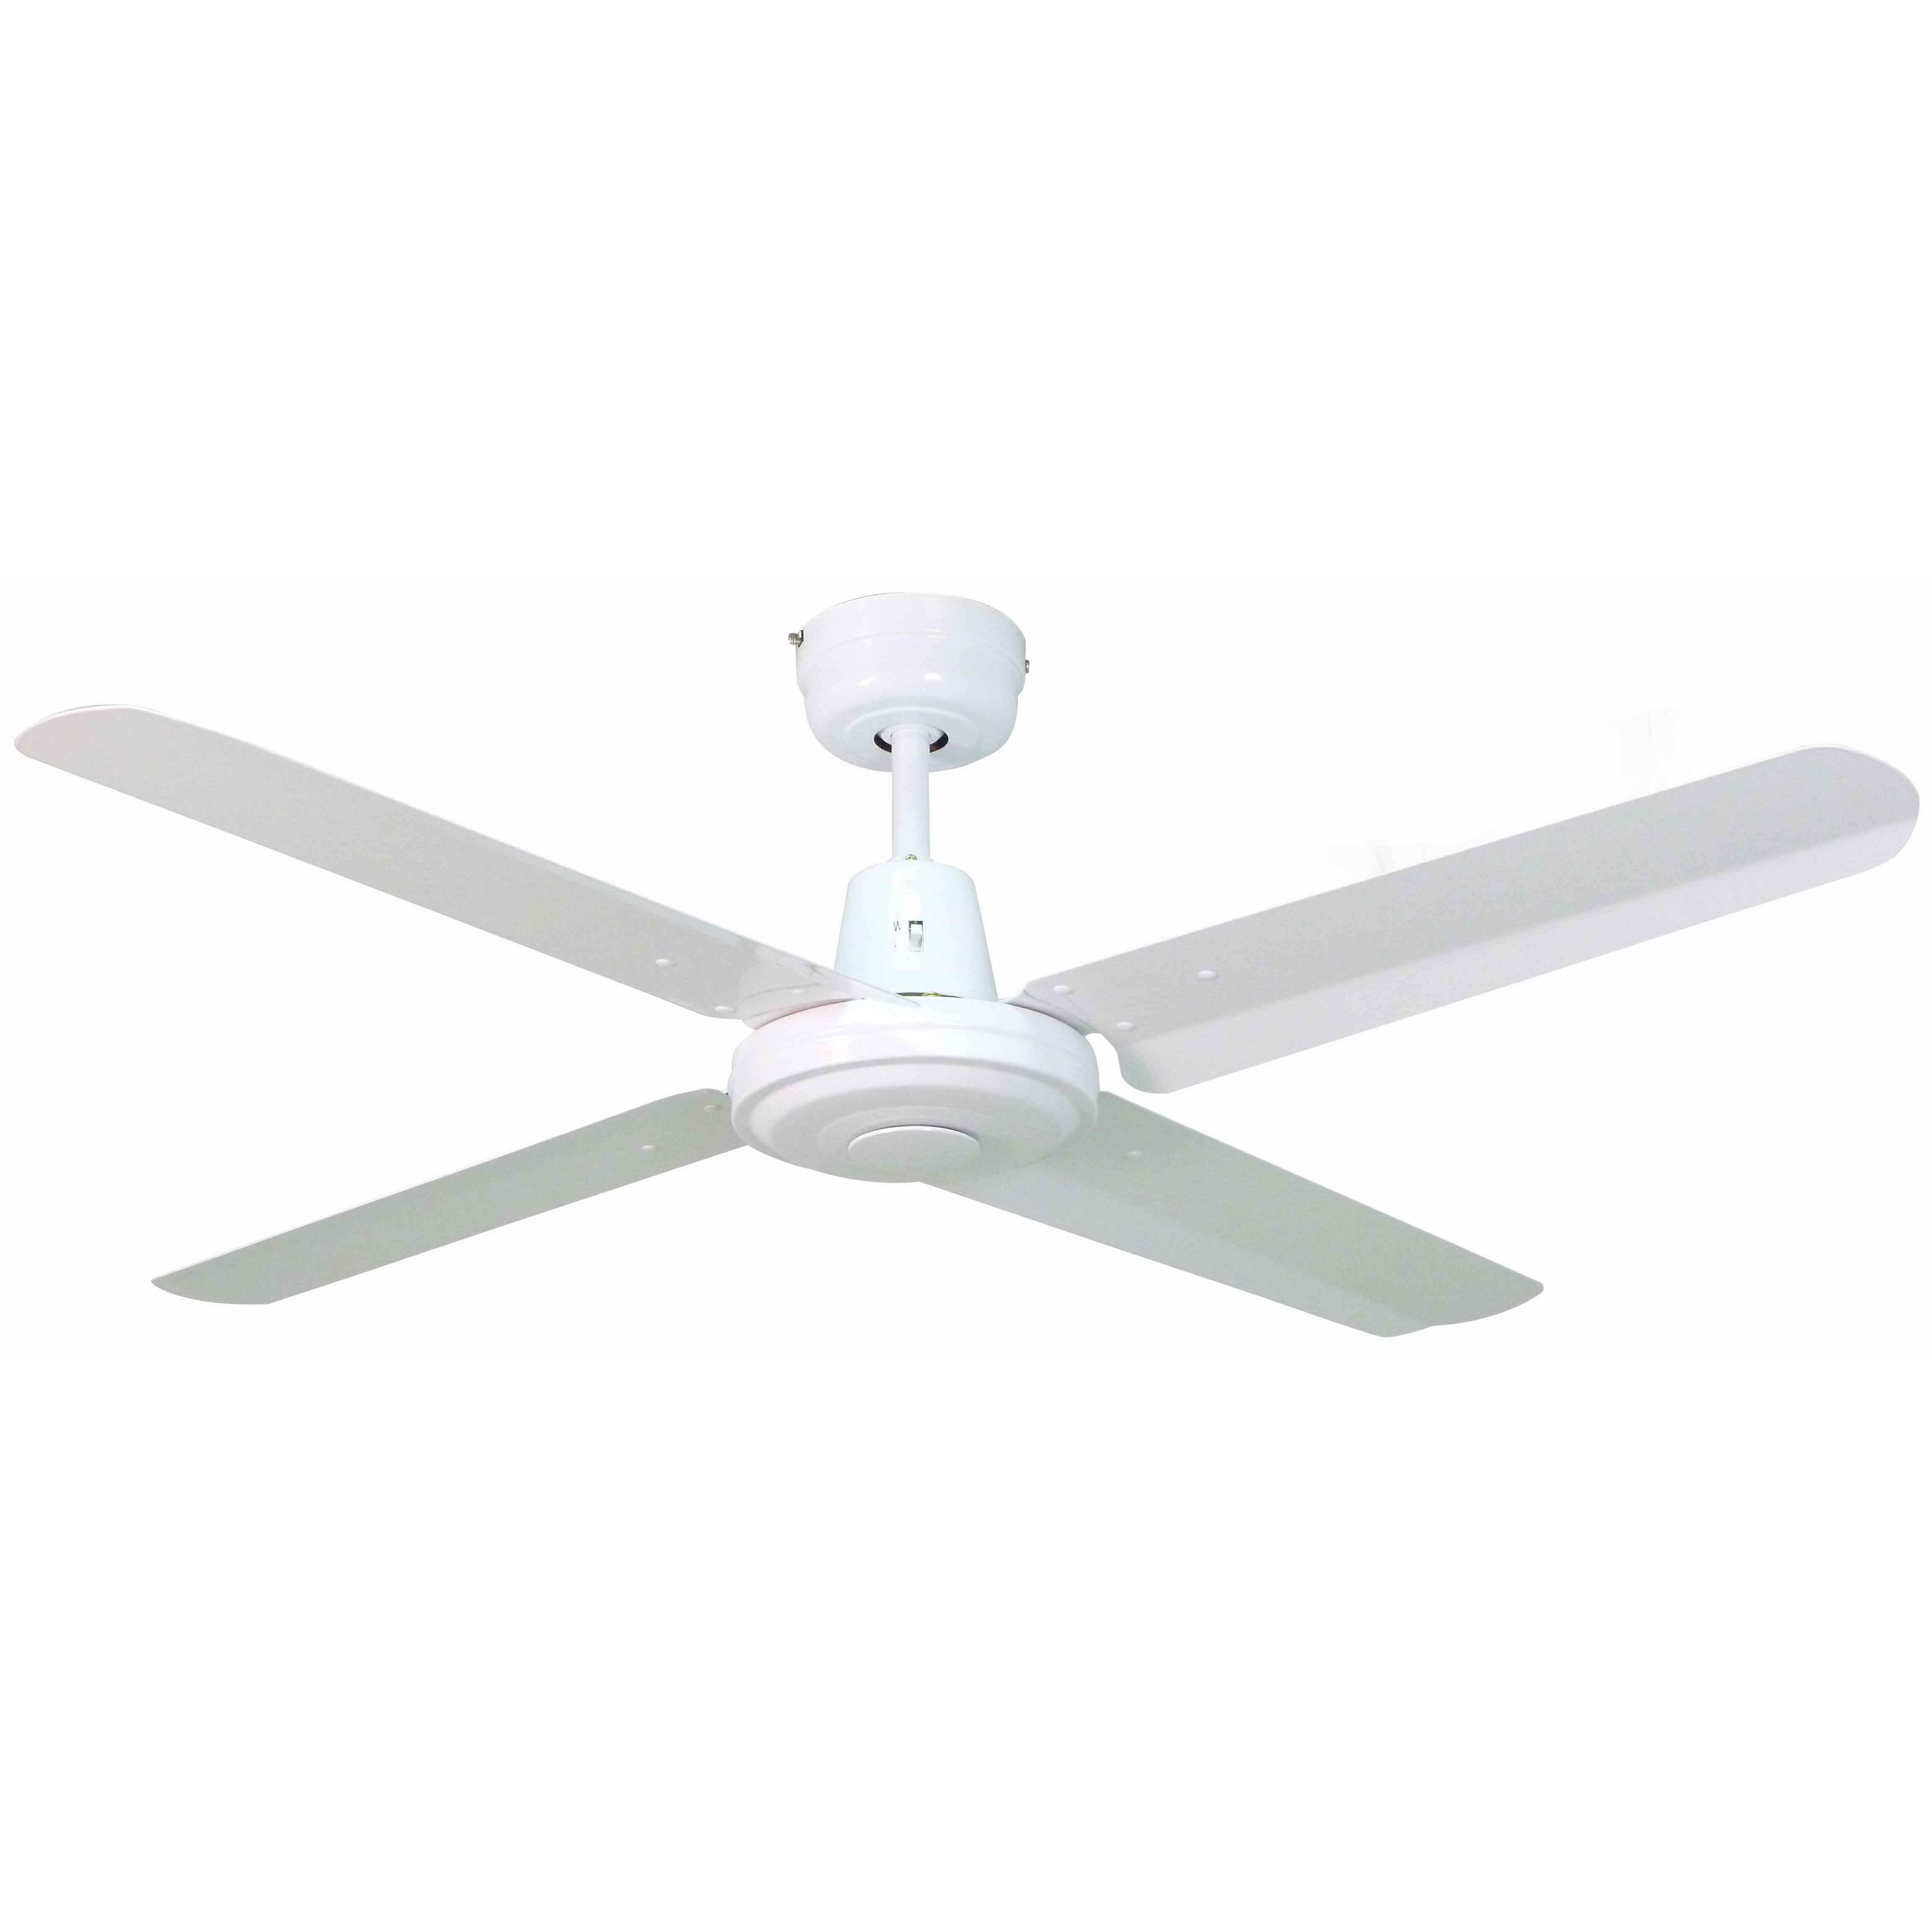 Mercator Swift 48 Metal Ceiling Fan Ceiling Fan Metal Ceiling Fan Light